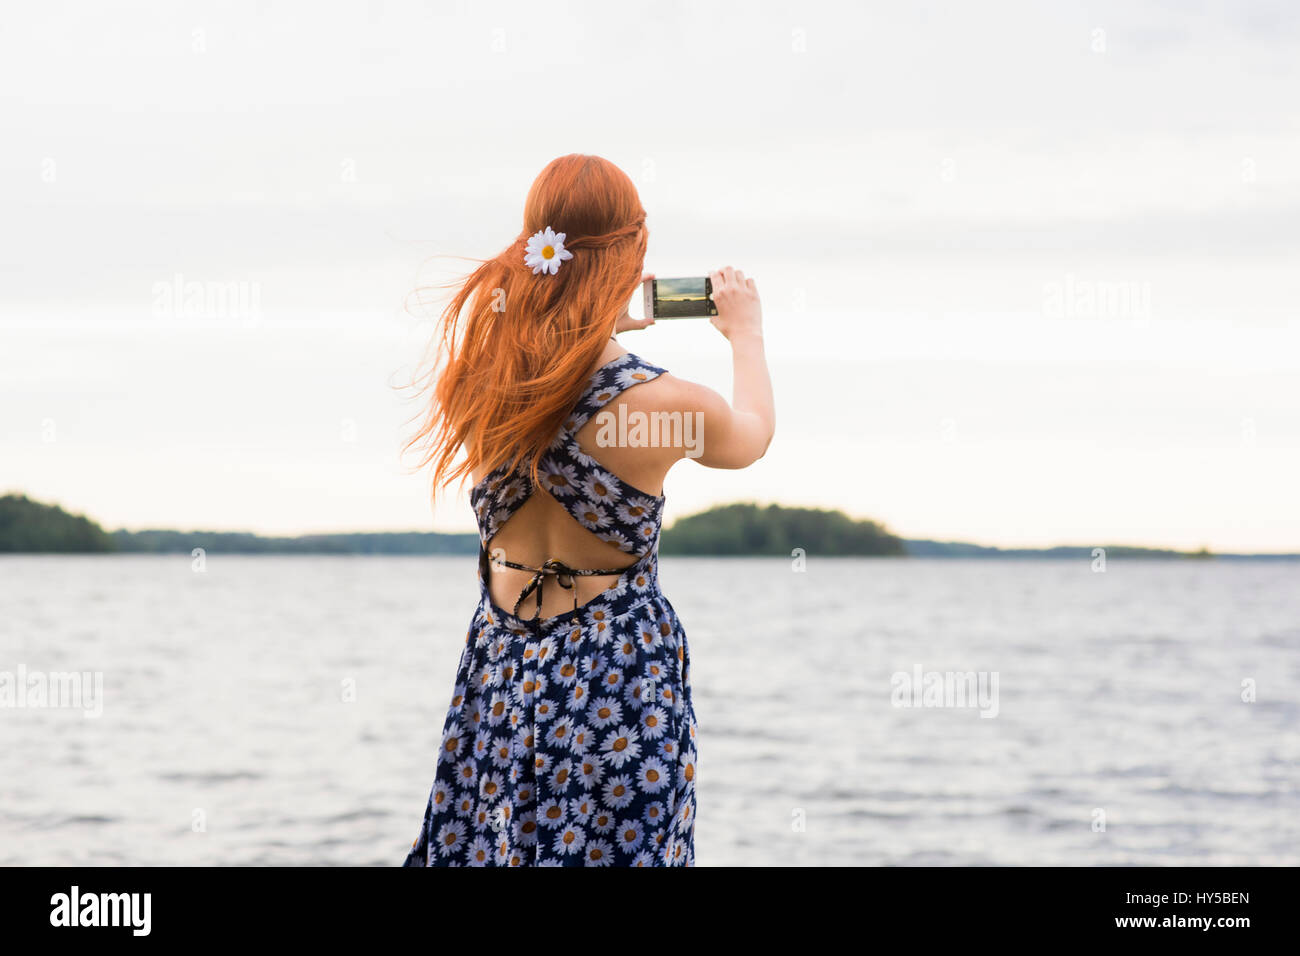 Finland, Pirkanmaa, Tampere, Woman photographing sea - Stock Image